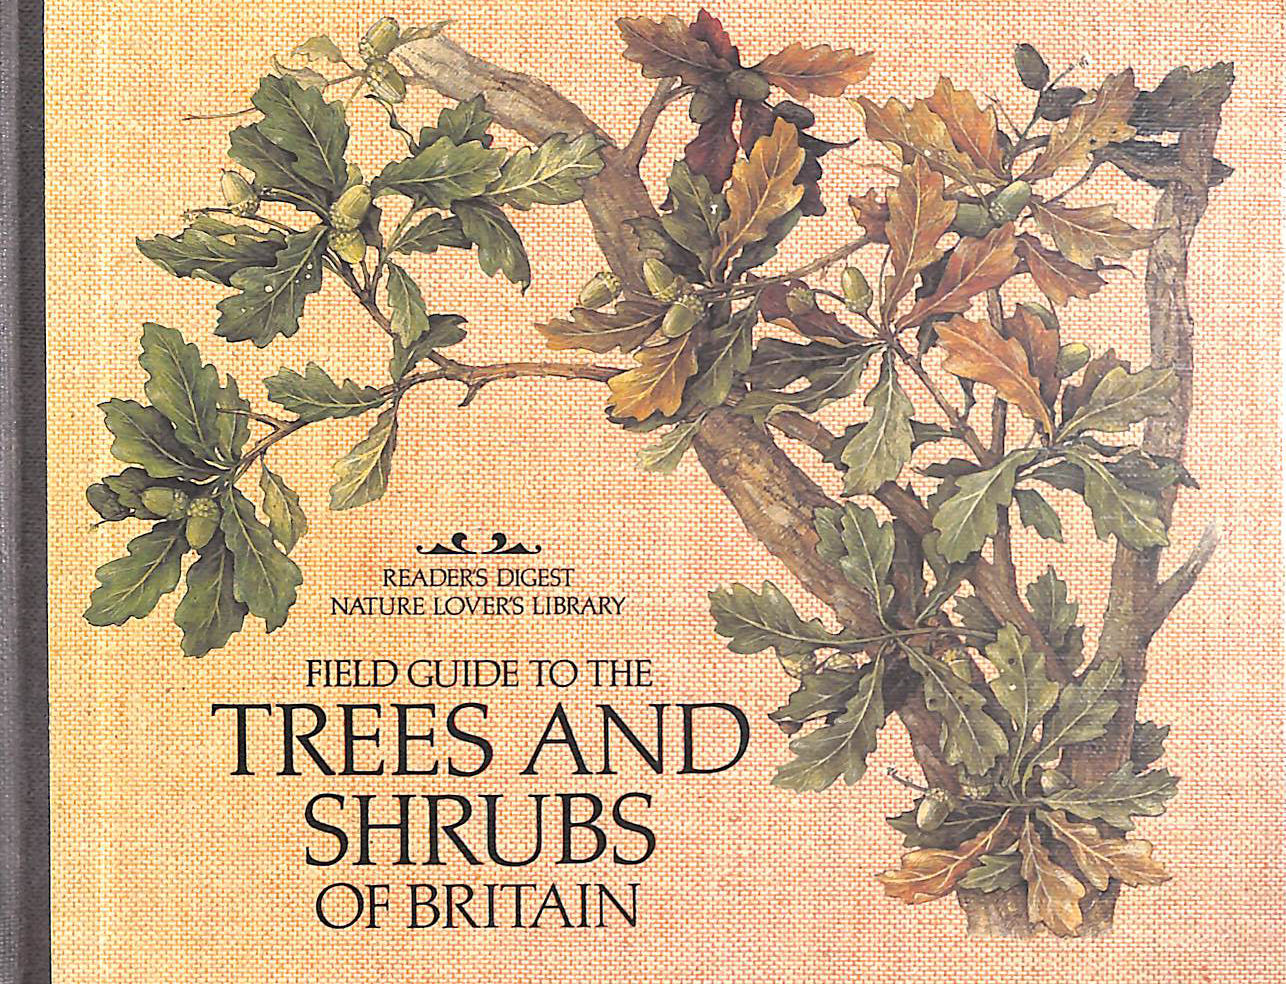 Image for Field Guide To The Trees And Shrubs Of Britain (Reader'S Digest Nature Lover's Library)to the trees and shrubs of Britain (Reader's Digest nature lover's library)